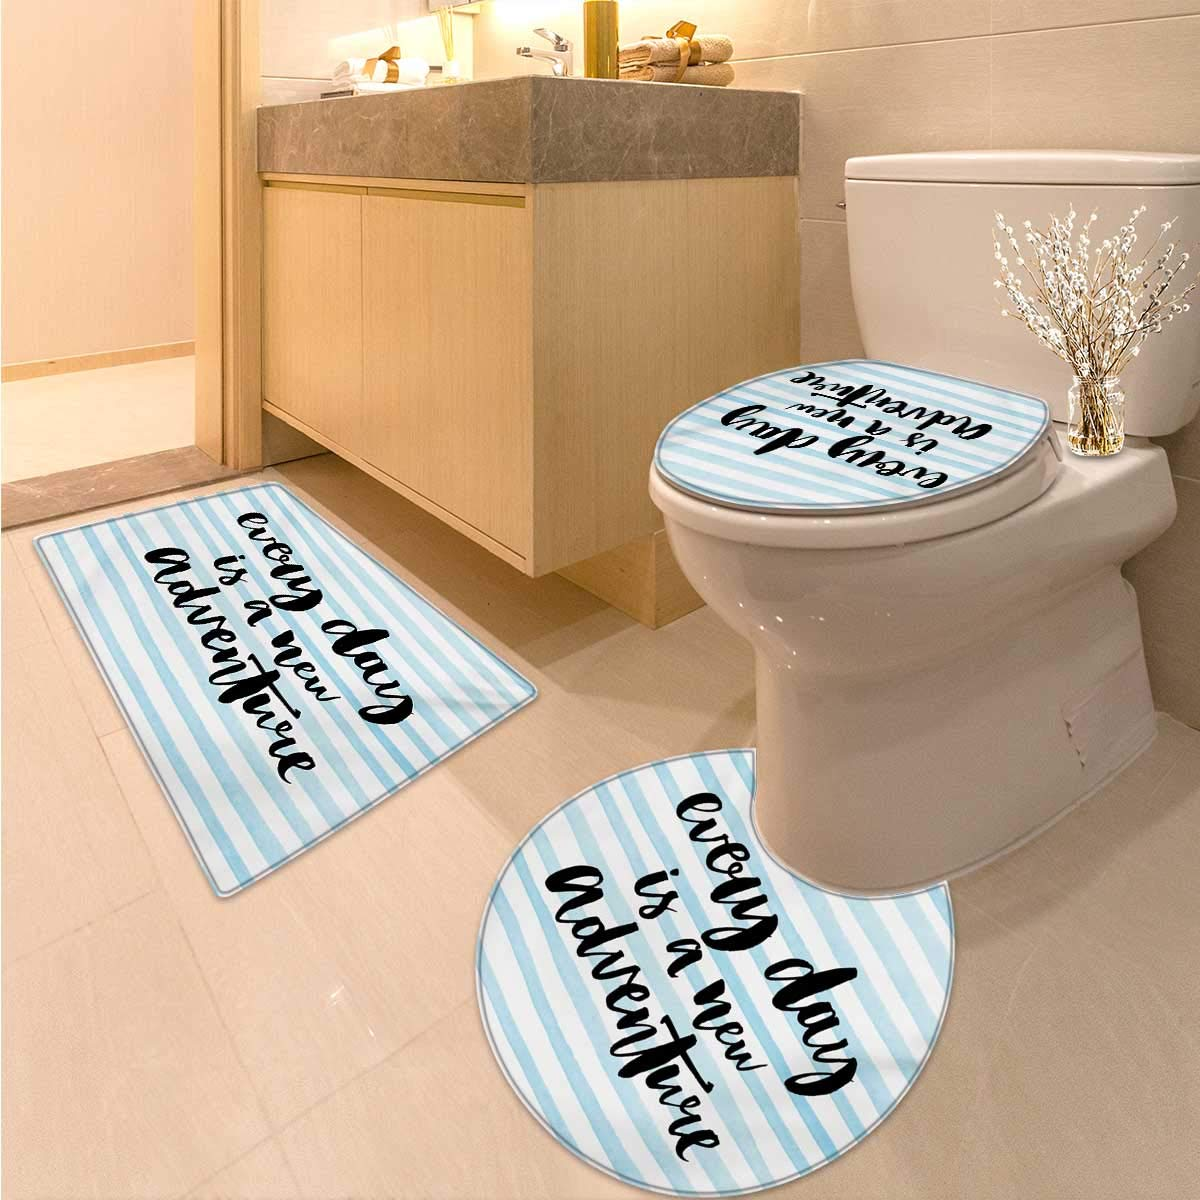 Adventure Bathroom Toilet mat Set Every Day is a New Adventure Quote Inspirational Things About Life Artwork 3 Piece Large Contour Mat Set Baby Blue Black by Anhuthree